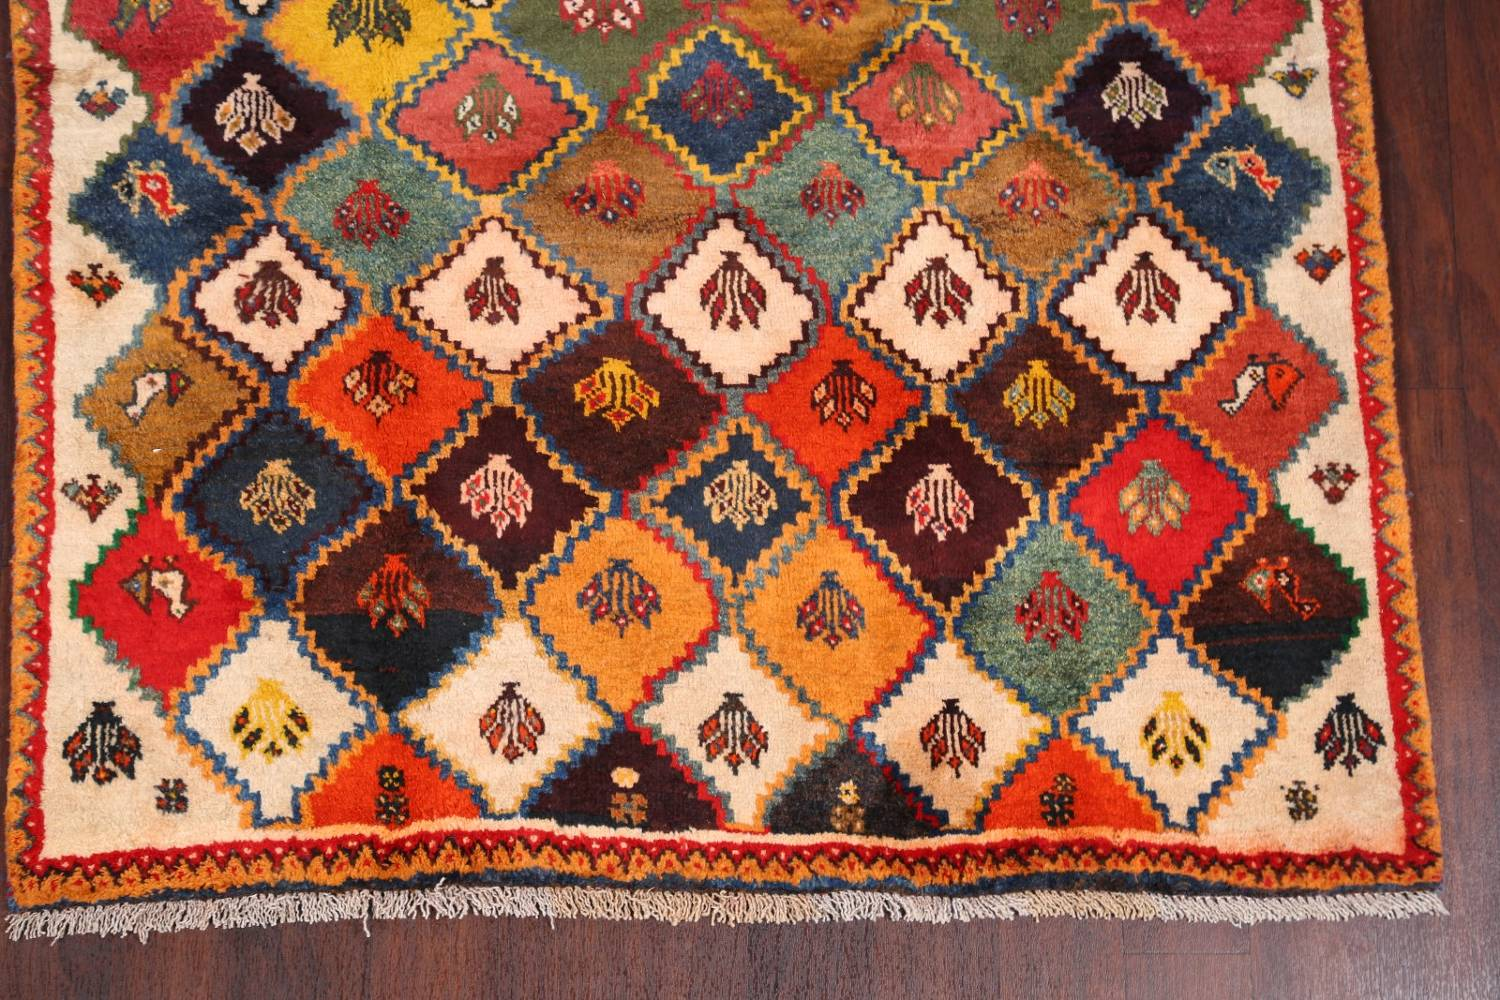 Tribal Geometric Gabbeh Shiraz Persian Hand-Knotted Area Rug Wool 5x6 image 5